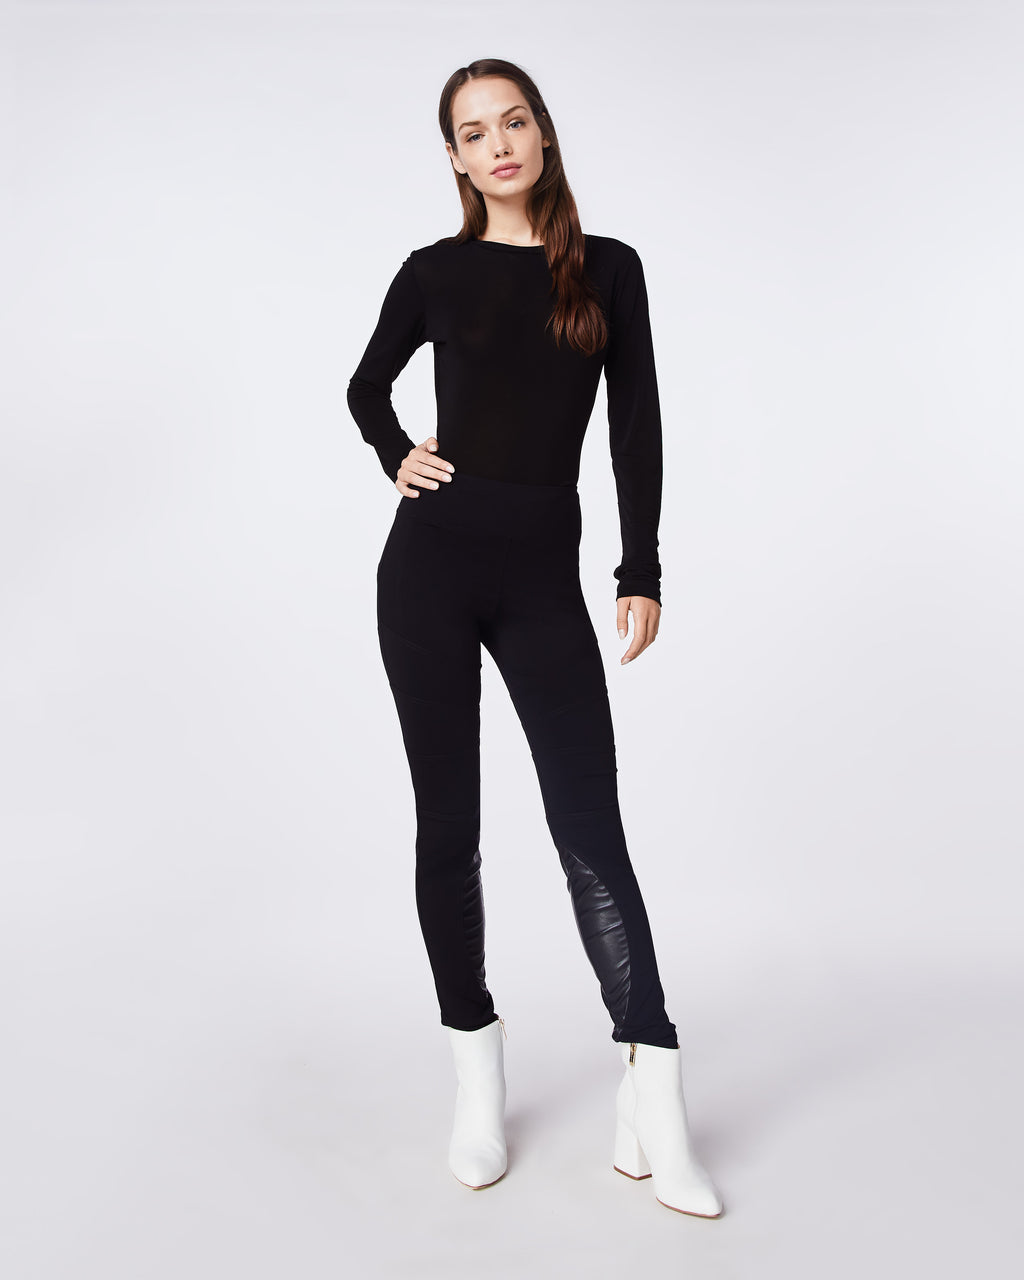 BH10417 - CITY STRETCH SEAMED SKINNY PANT - bottoms - pants - THIS CLASSIC SKINNY PANT HAS WITH A LEATHER WAIST BAND FOR AN ELVELATED LOOK.